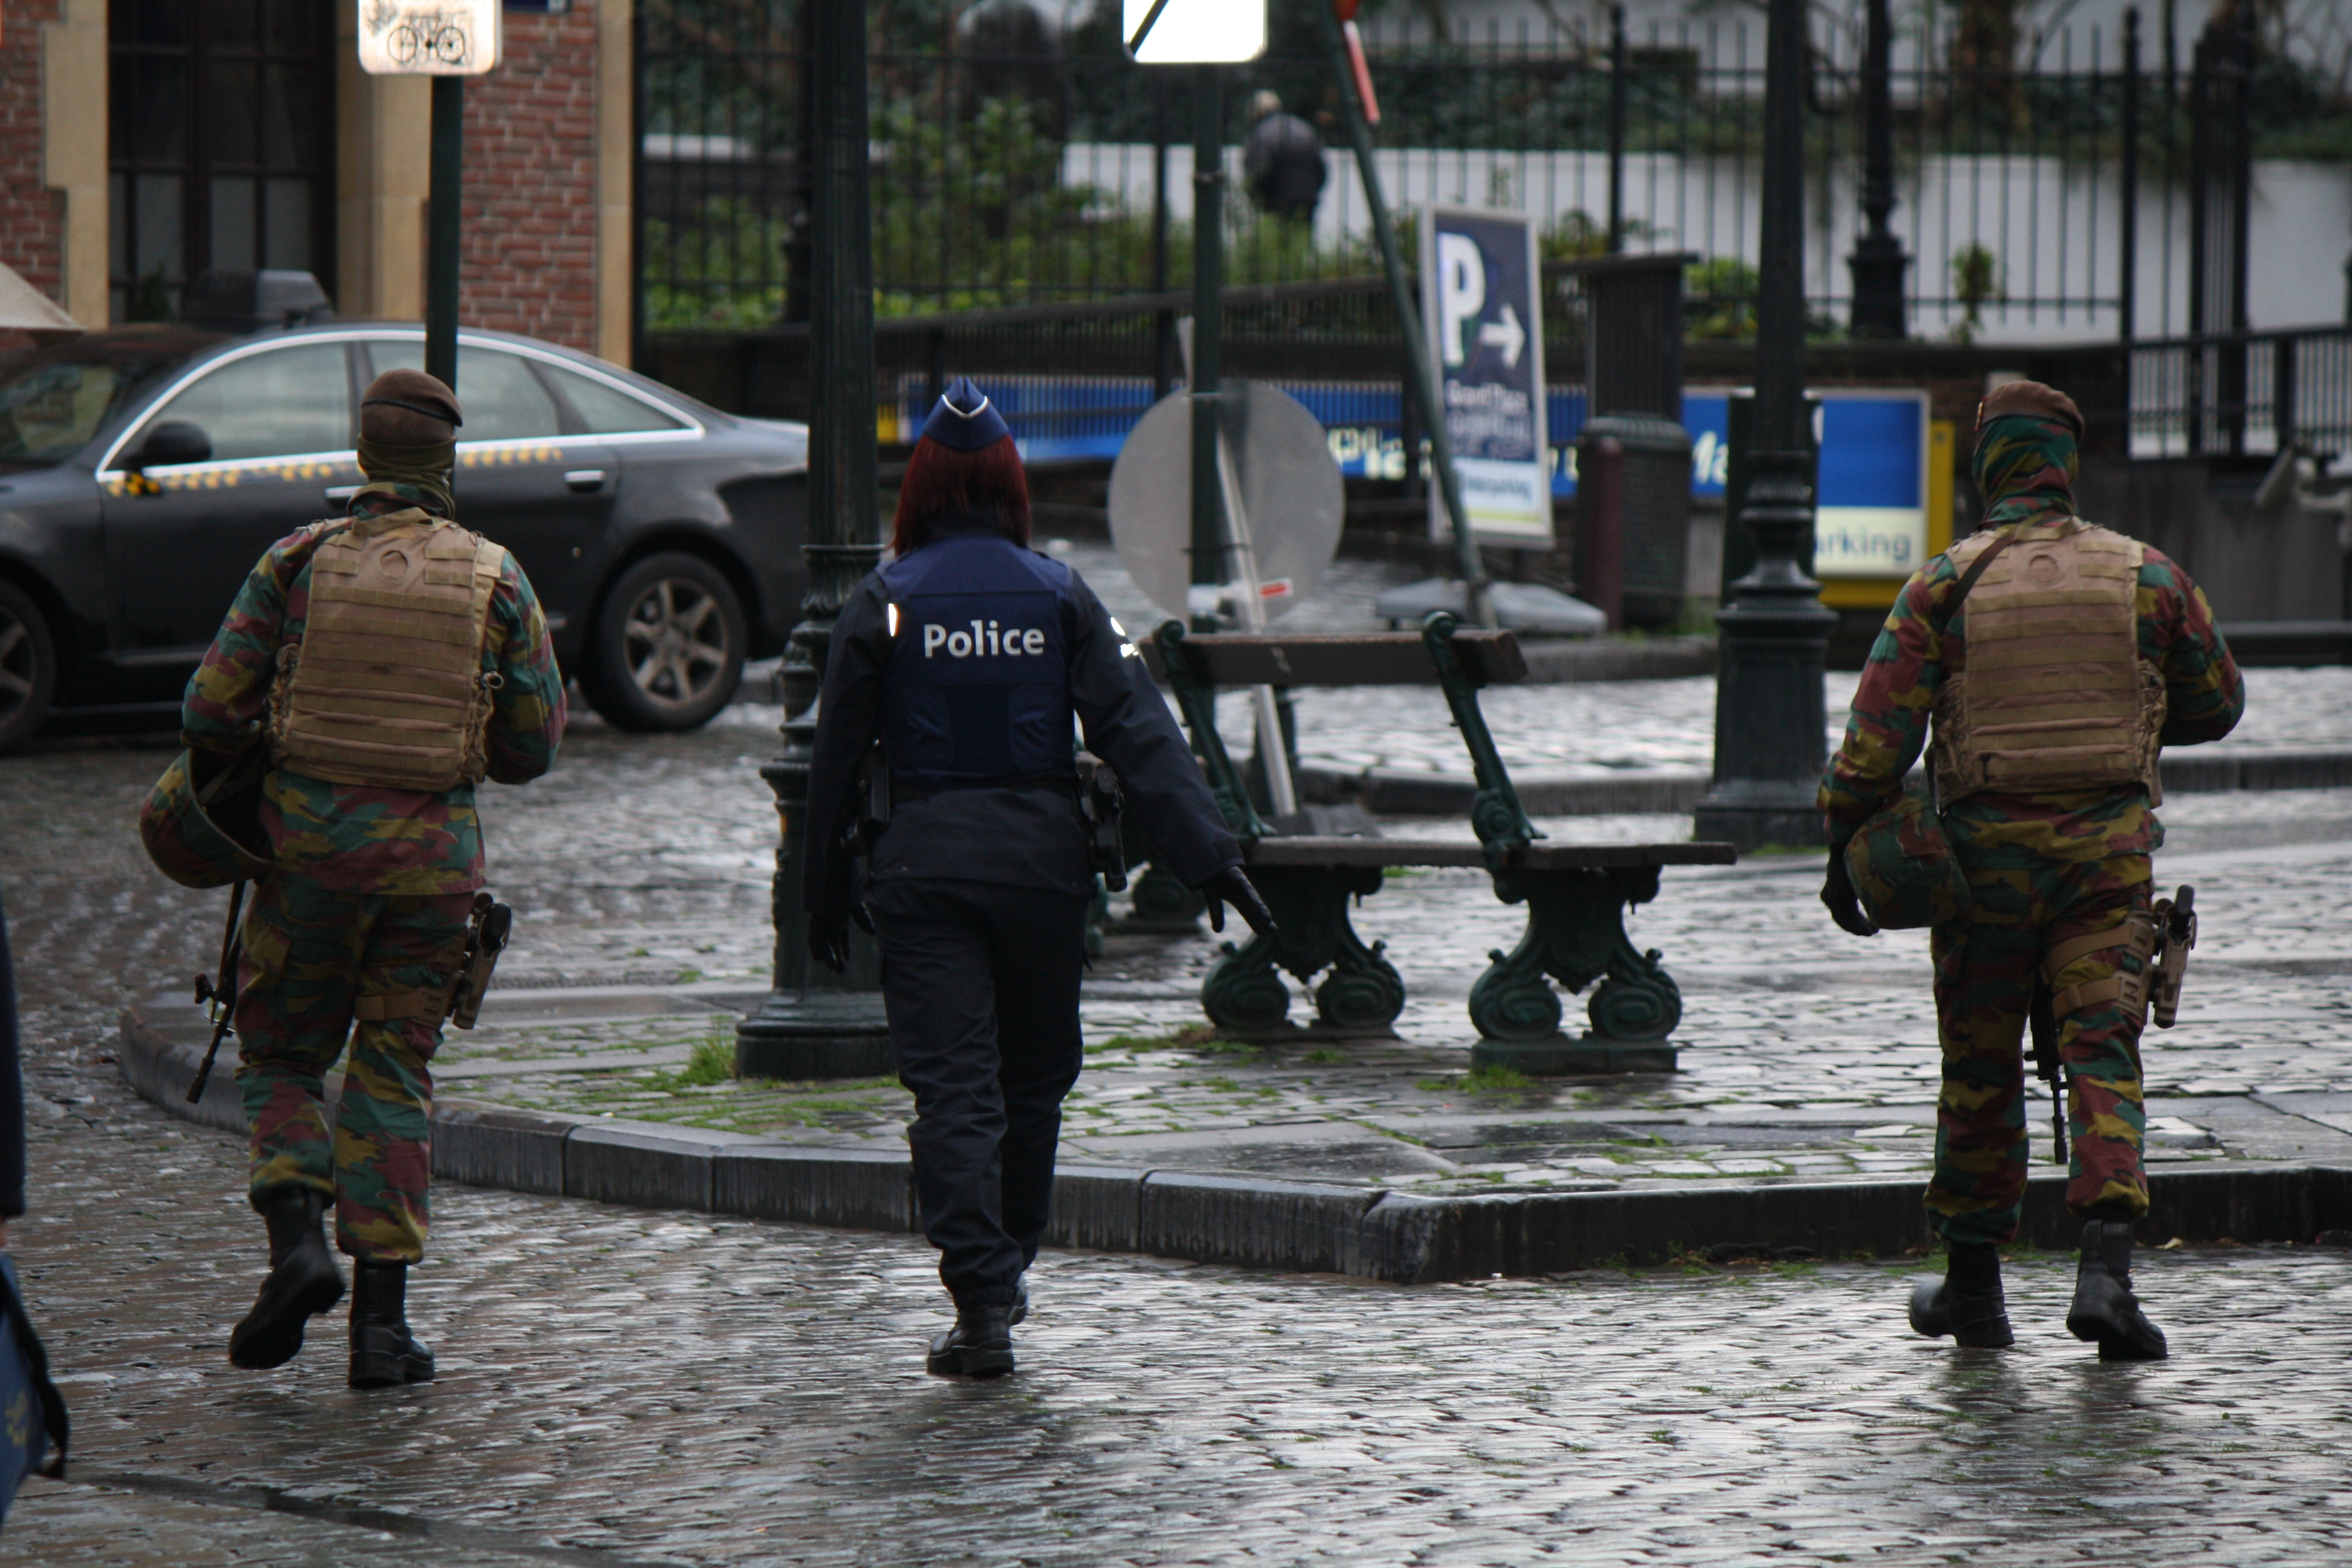 Security forces appear generally calm as they widen their search for men suspected of being involved in the Paris attacks, and possibly planning attacks in Brussels, Belgium, Nov. 22, 2015.